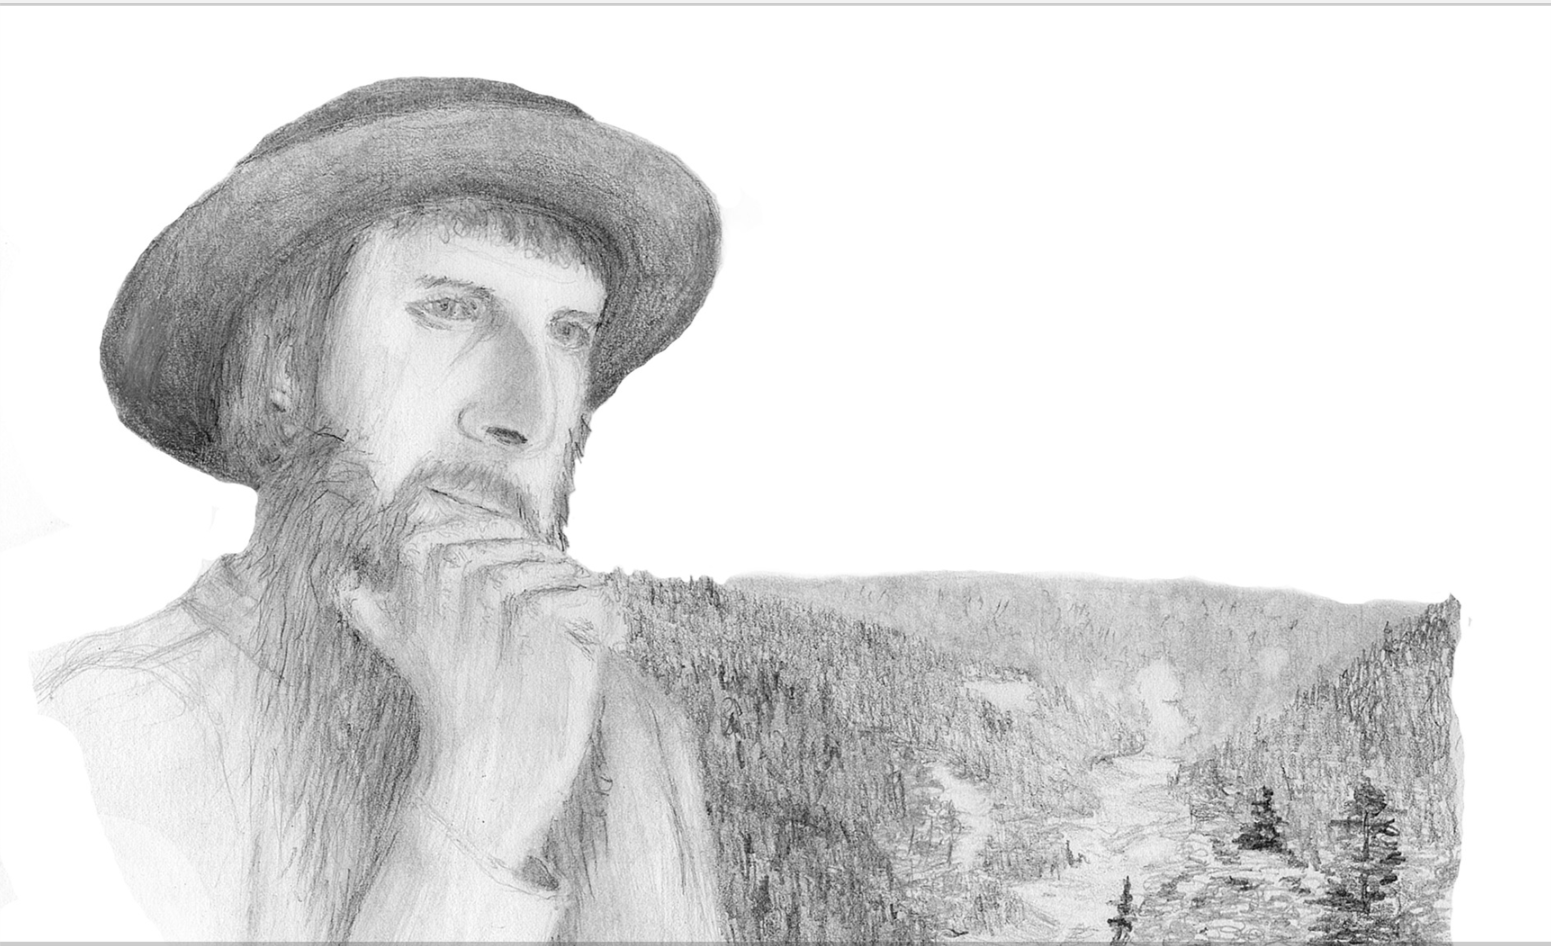 Pencil sketch of Jakob Ammann with a background of the valley where he lived near Markirch (now Ste. Marie aux Mines), Elsass/Alsace. His house would have been in the valley just below the trees in the foreground. This work is based on historical research, but is obviously not a direct sketch of Ammann. No known images of him exist. I created this work and release it to the public domain.  Jacob Ammann (12 February 1644 – between 1712 and 1730) was an Anabaptist leader and namesake of the Amish religious movement.